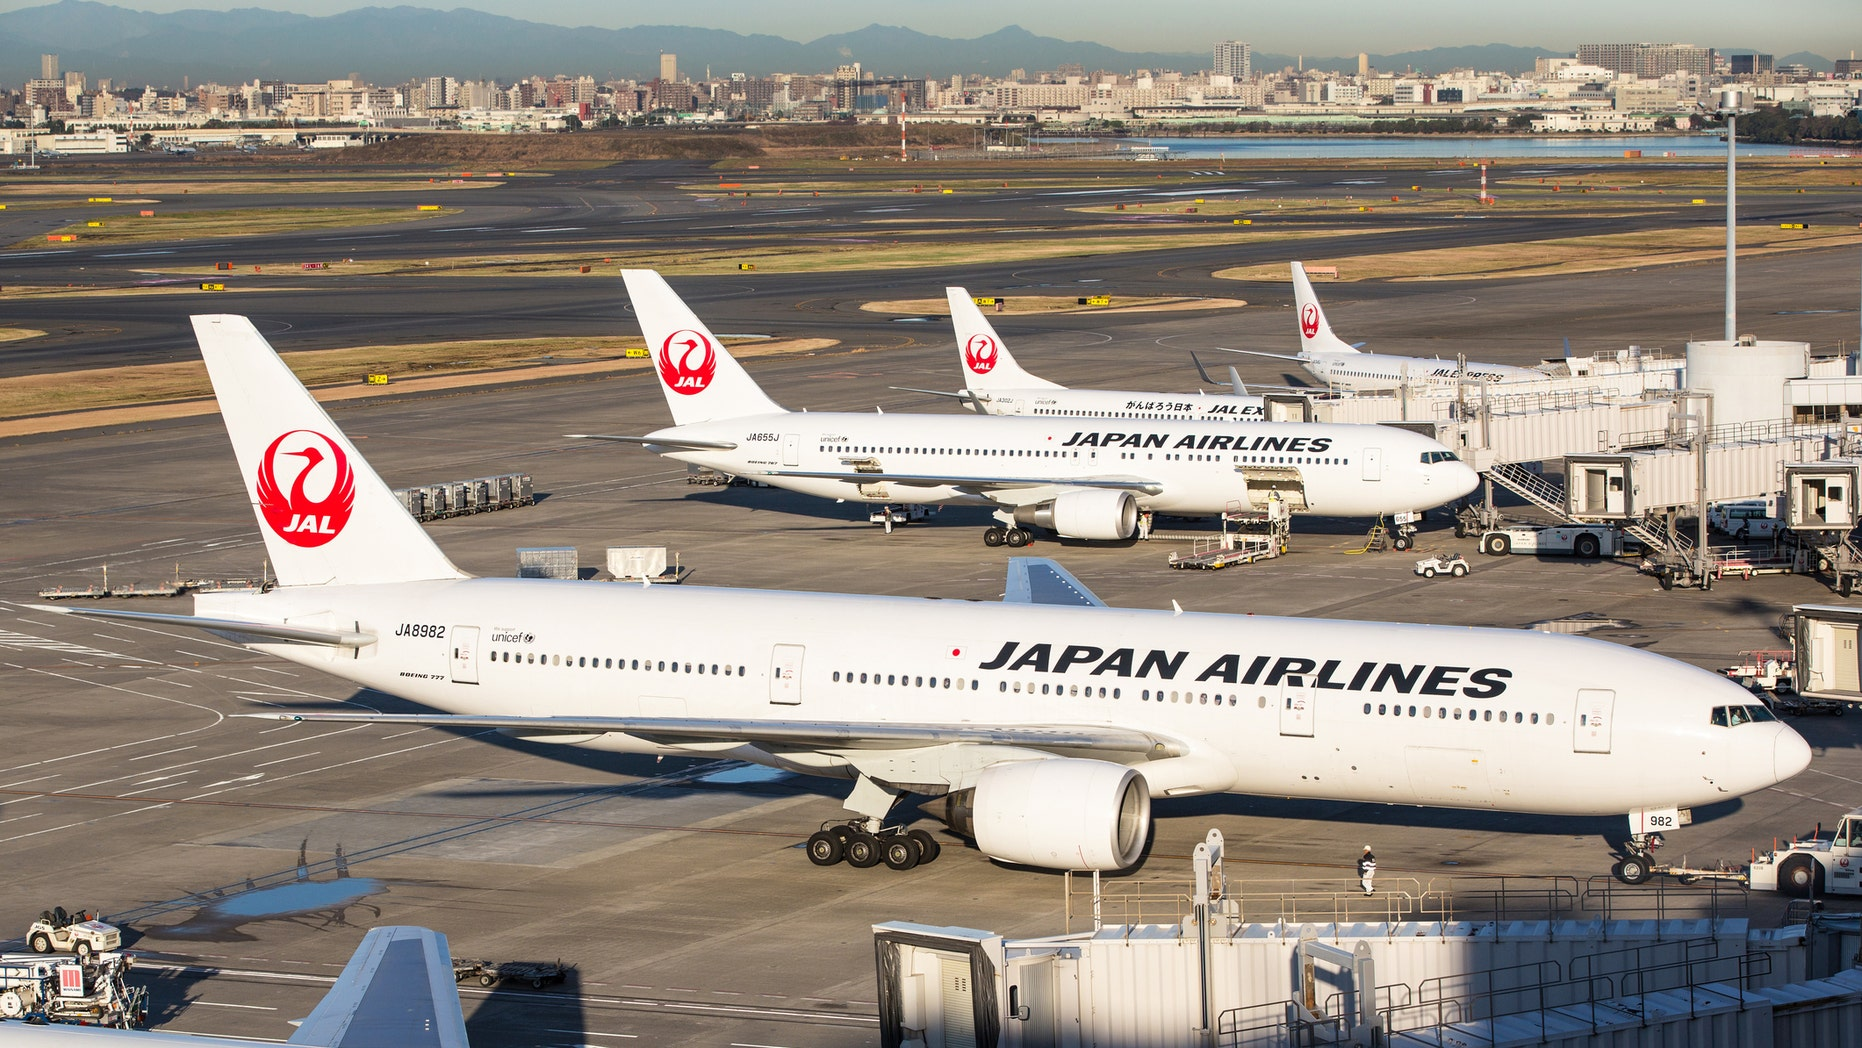 Japanese pilot is arrested for being drunk ahead of flight from Heathrow